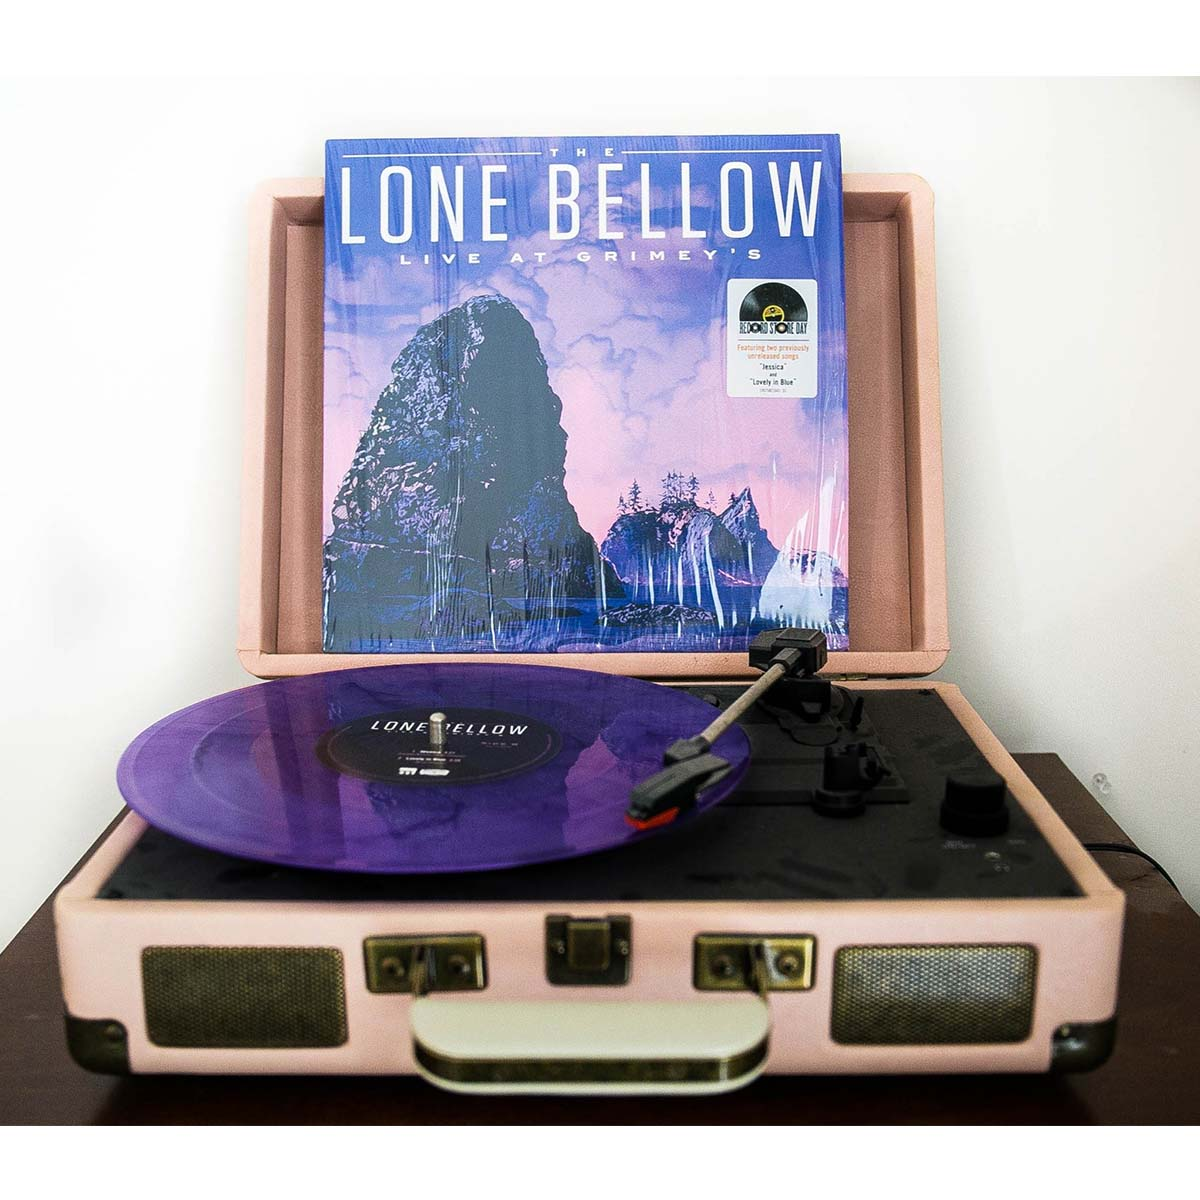 The Lone Bellow Live at Grimey's EP